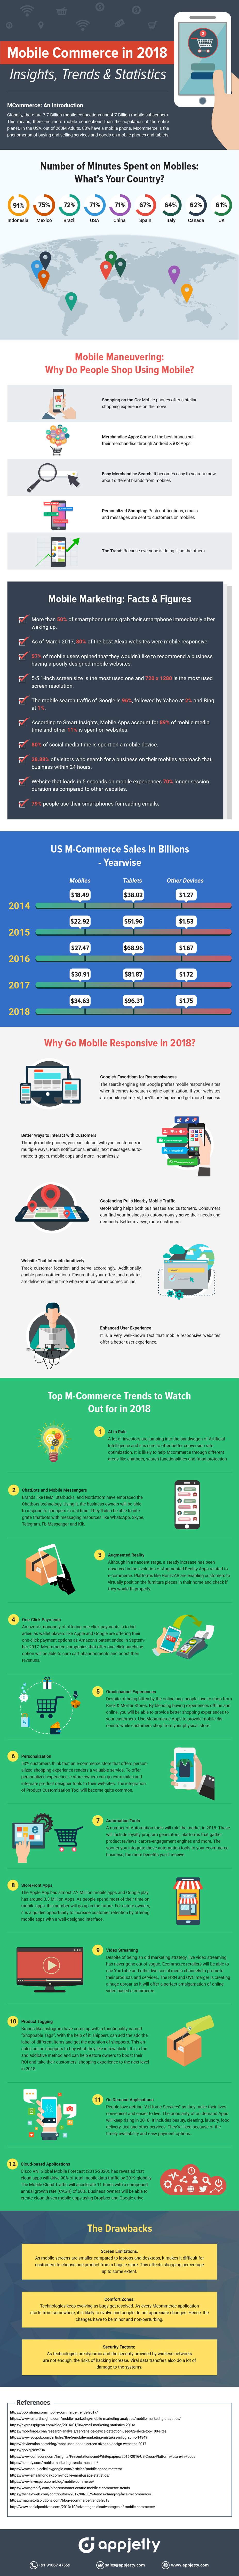 Mobile-Commerce-in-2018-Insights-Trends-Statistics.jpg